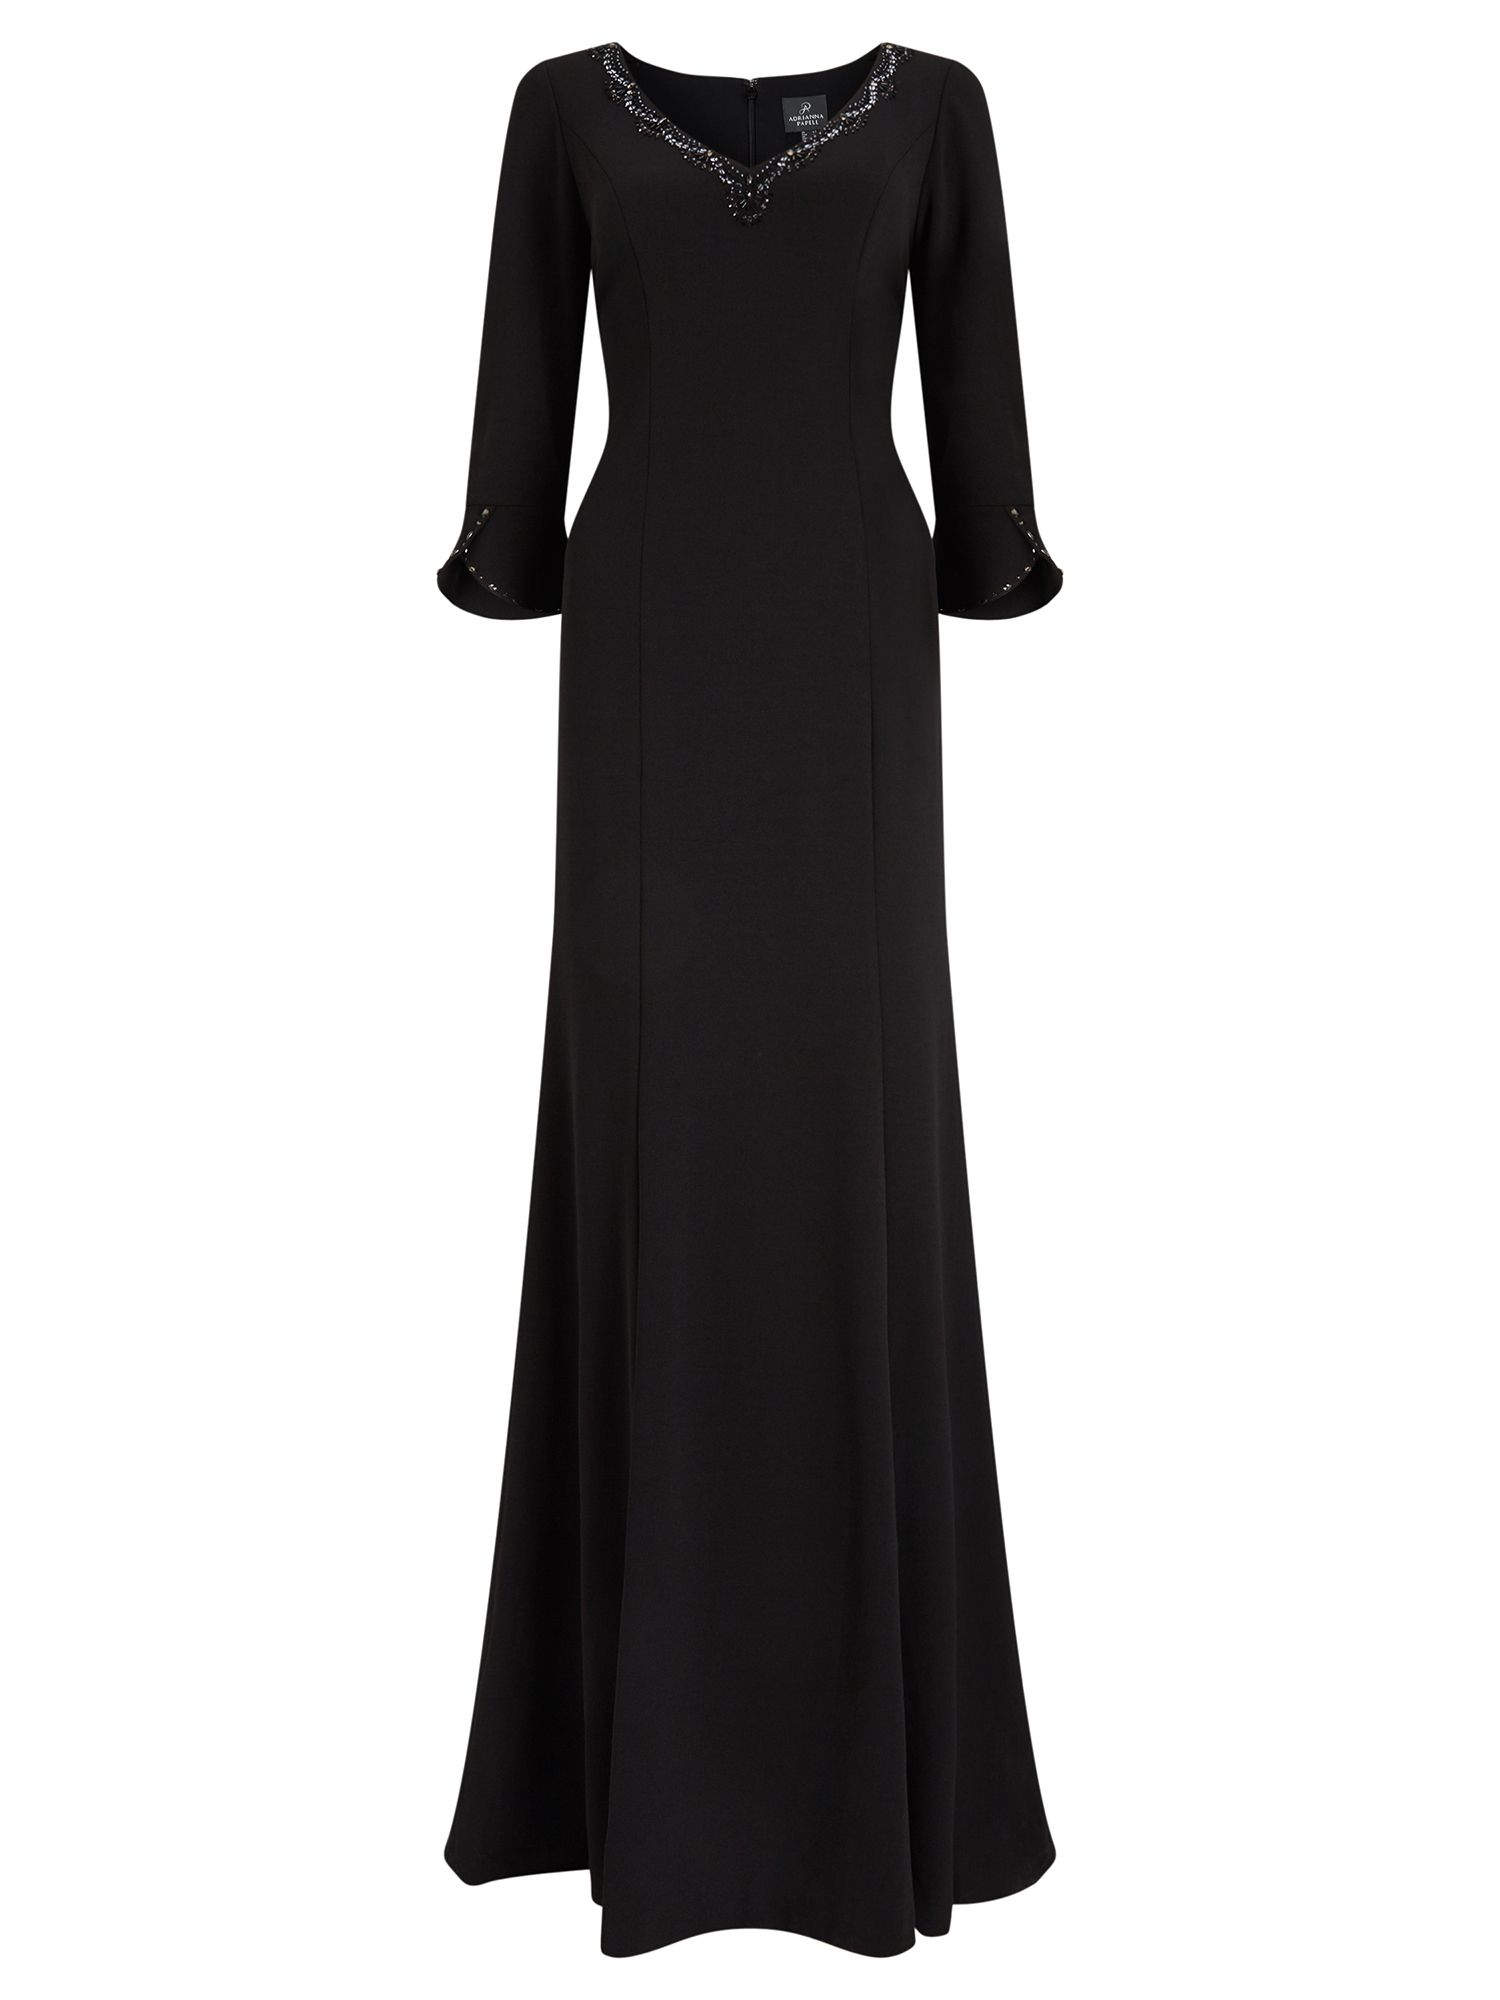 Adrianna Papell 3/4 Sleeve Evening Dress, Black